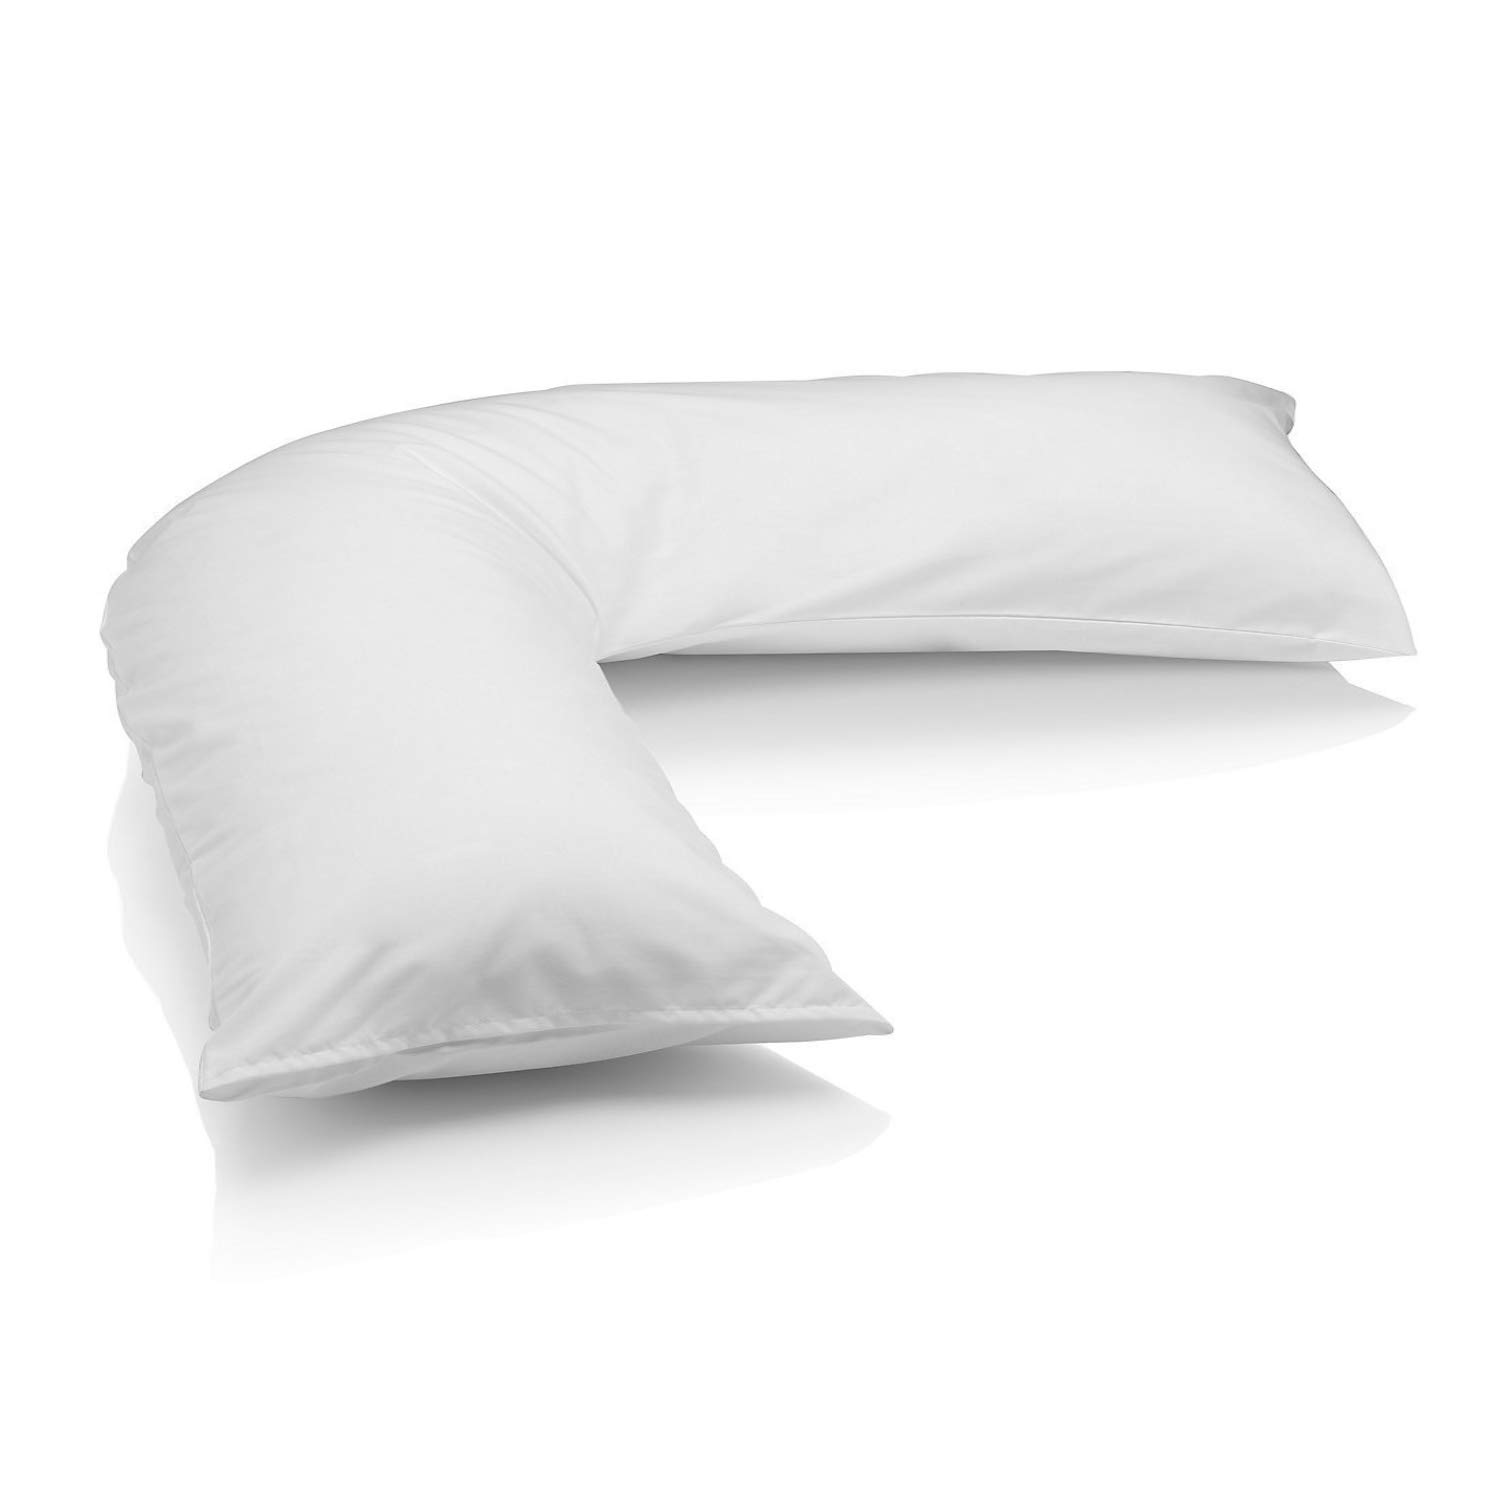 Anti Dust Mite Used for additional Back Iyan Linens Ltd Super Soft Duck Feather /& Down V Shaped Hotel Quality Pillow Washable Neck /& Leg Support Orthopedic Encased In White Cover V Pillow Only